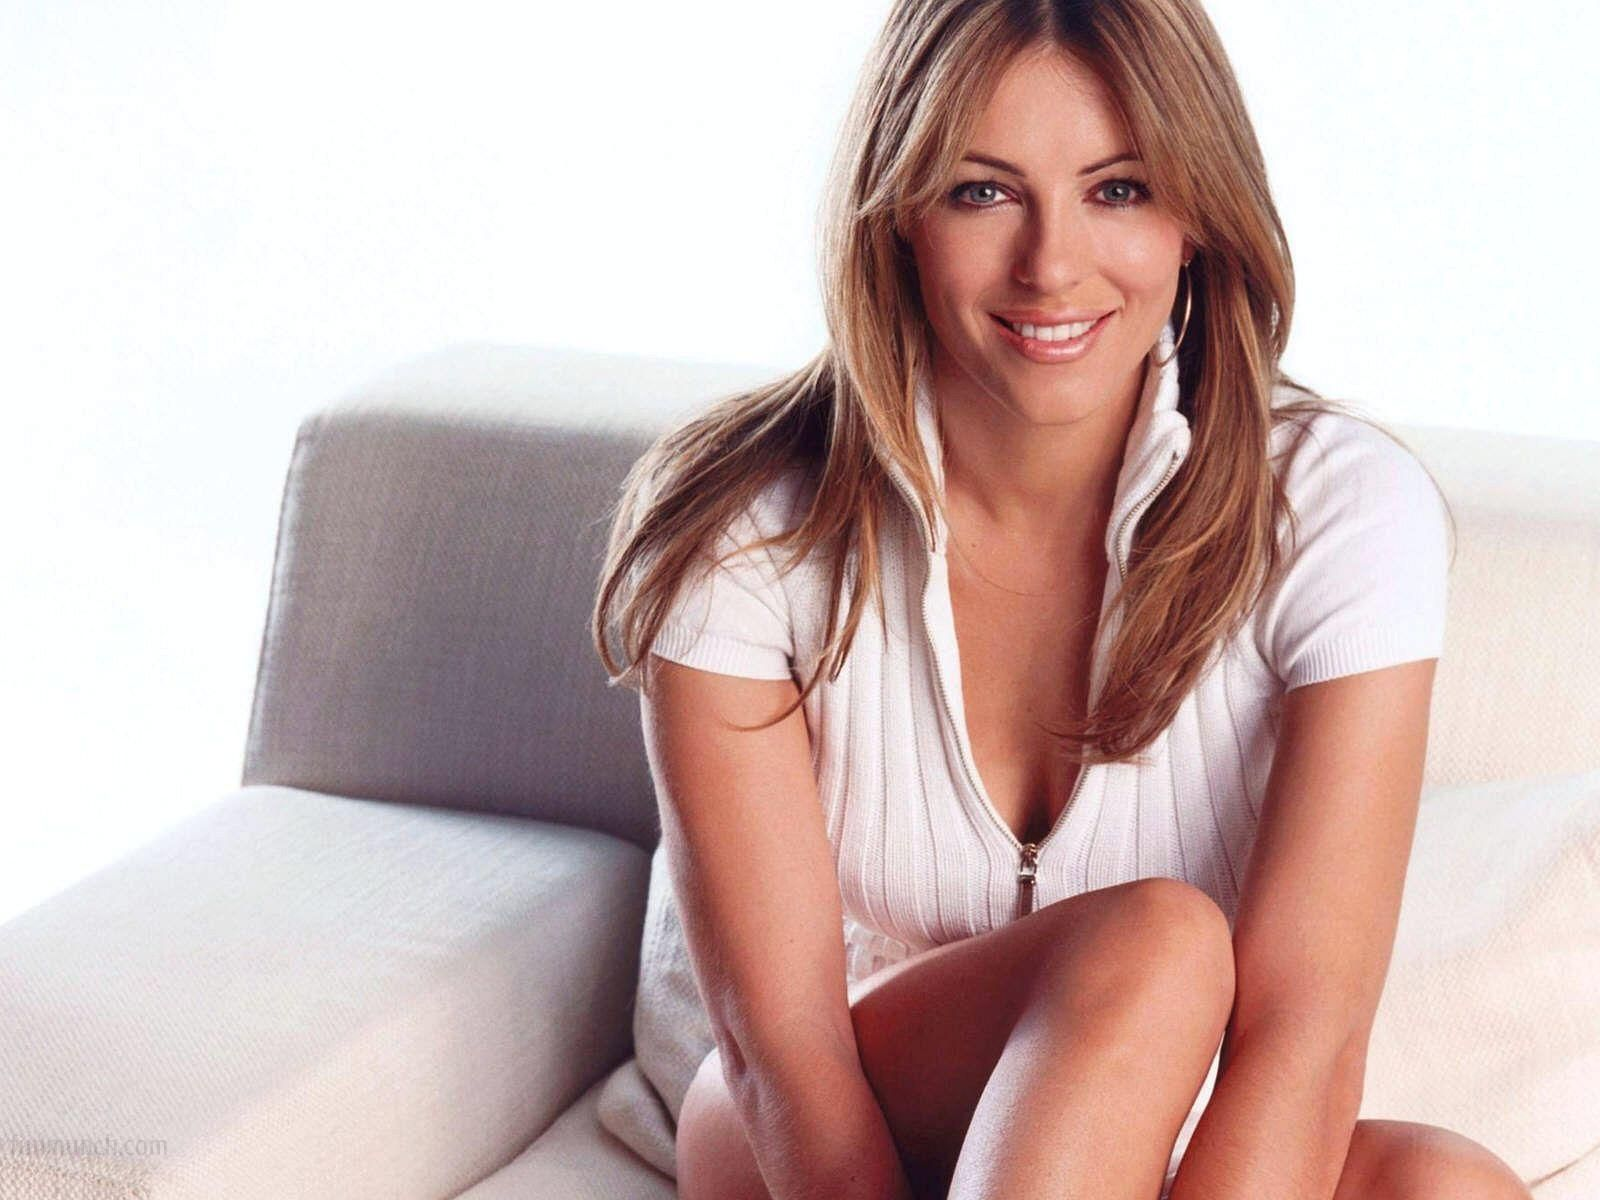 Elizabeth Hurley Hot HD Wallpaper | Celebrities Wallpapers